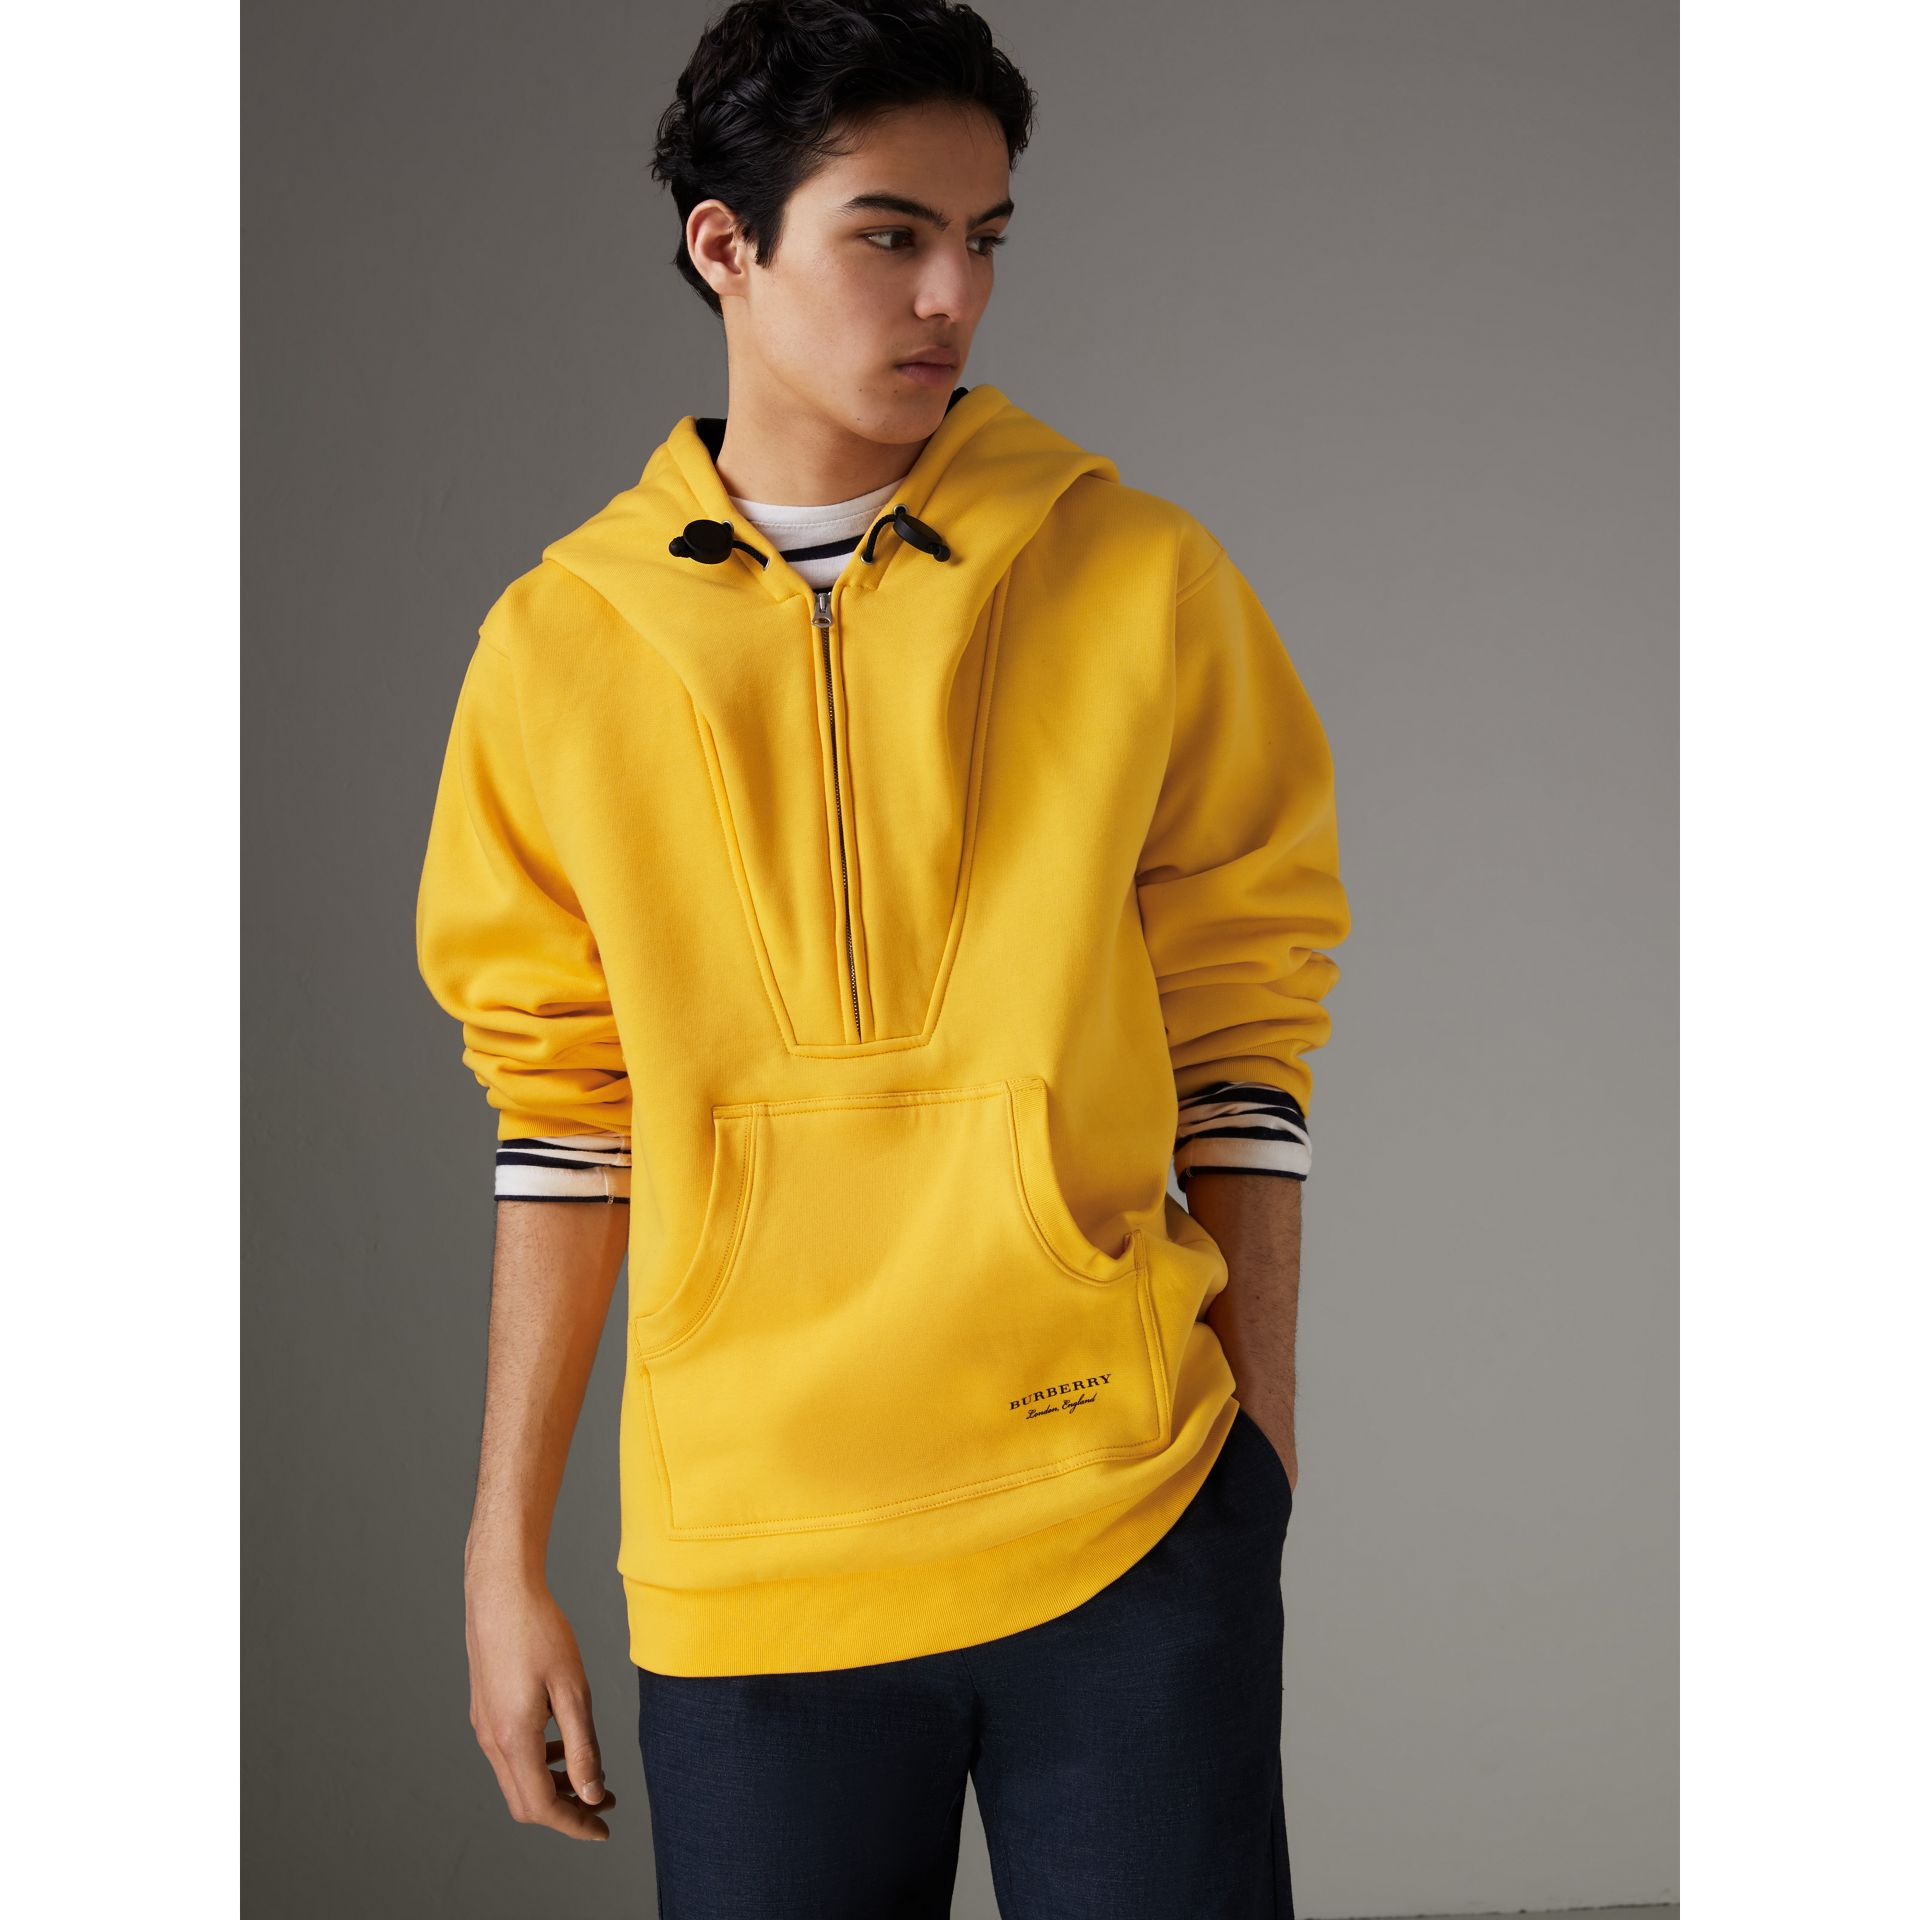 Oversized Sweatshirt Half-zip Hoodie in Bright Yellow - Men | Burberry United States - gallery image 5